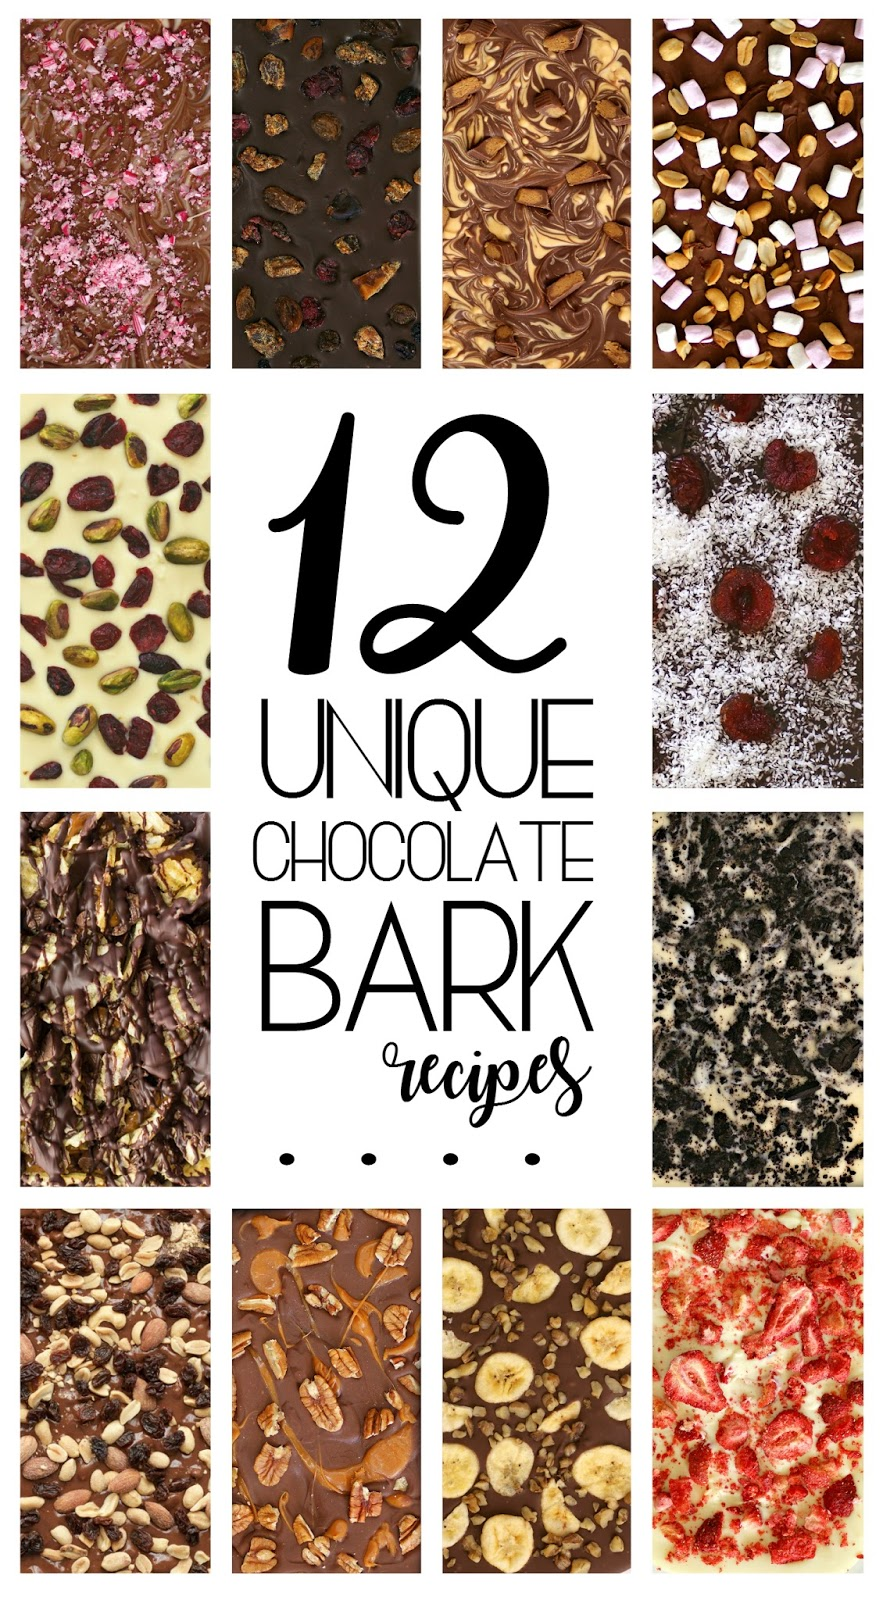 Southern in law 12 unique chocolate bark recipes for christmas gifting 12 unique chocolate bark recipes for homemade christmas gifts gluten free easy holiday recipes forumfinder Image collections